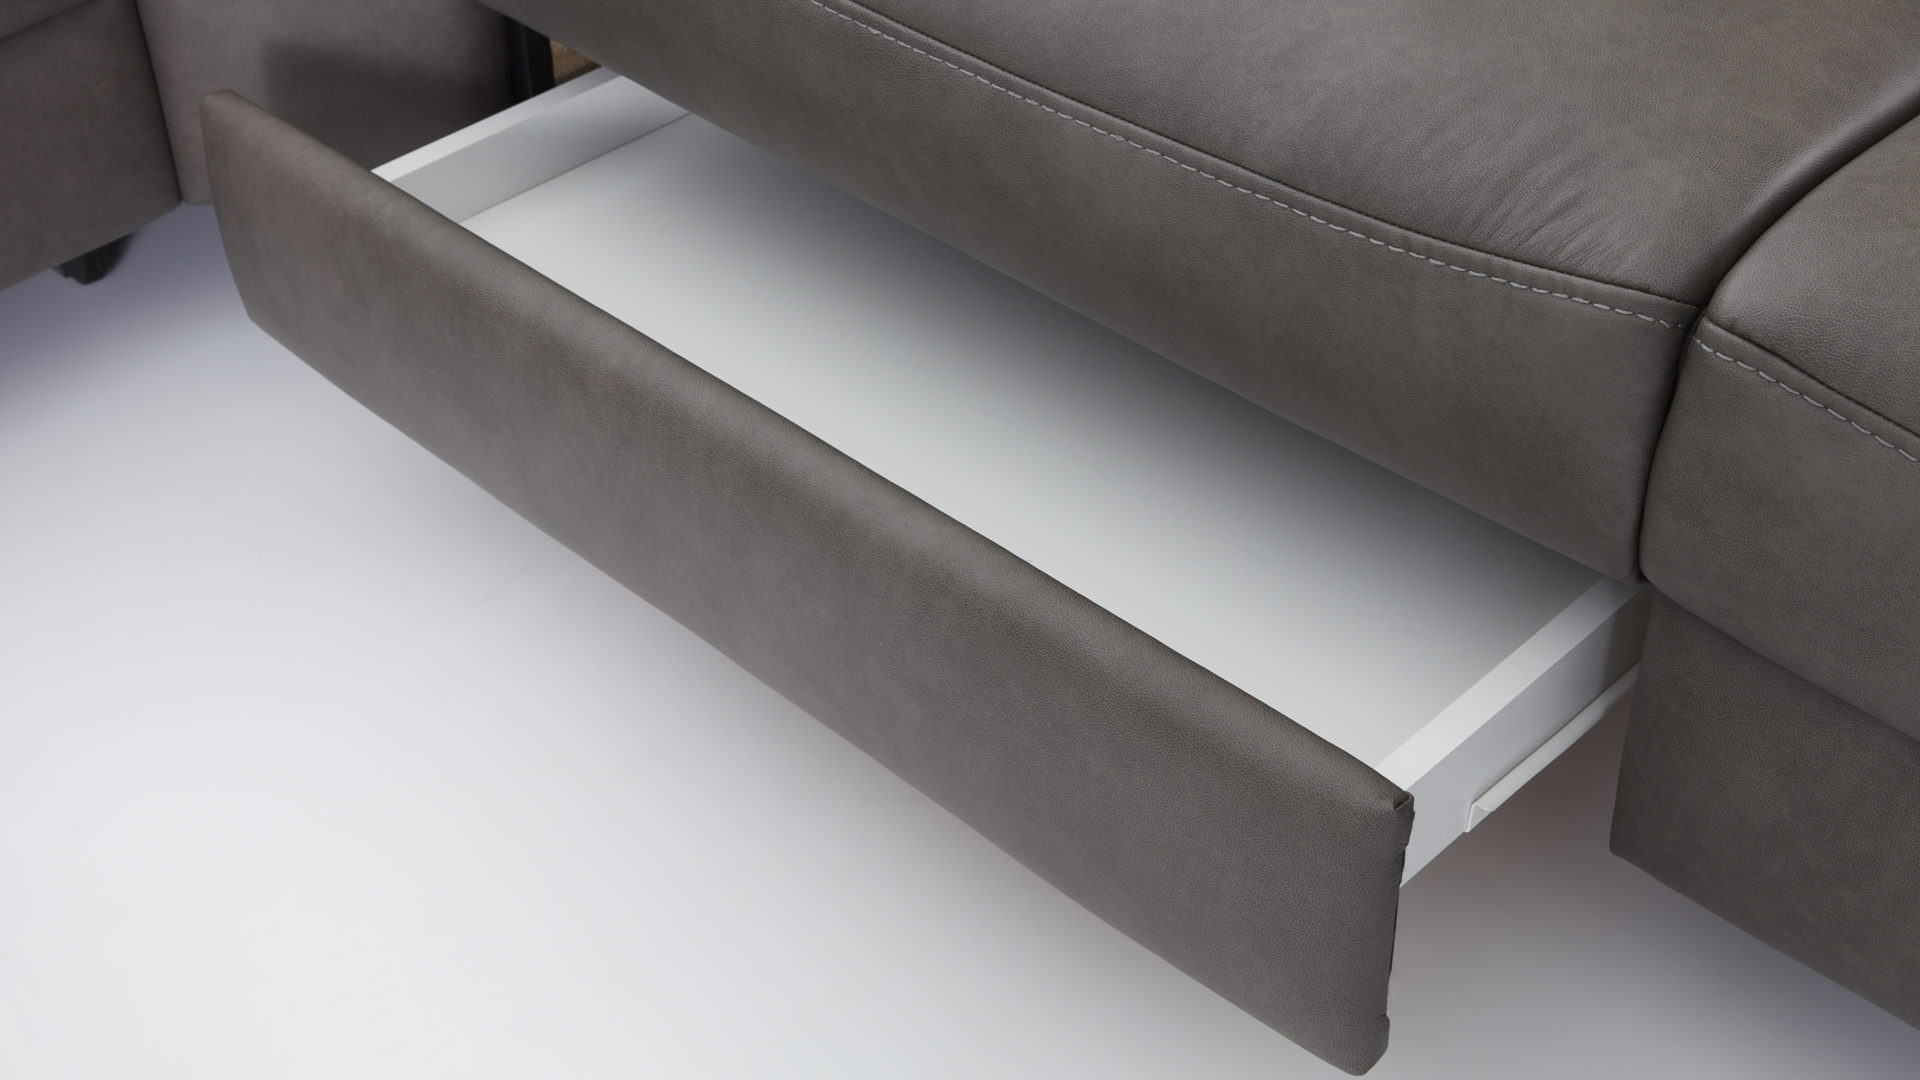 Trosser Interliving Interliving Interliving Sofa Serie 4050